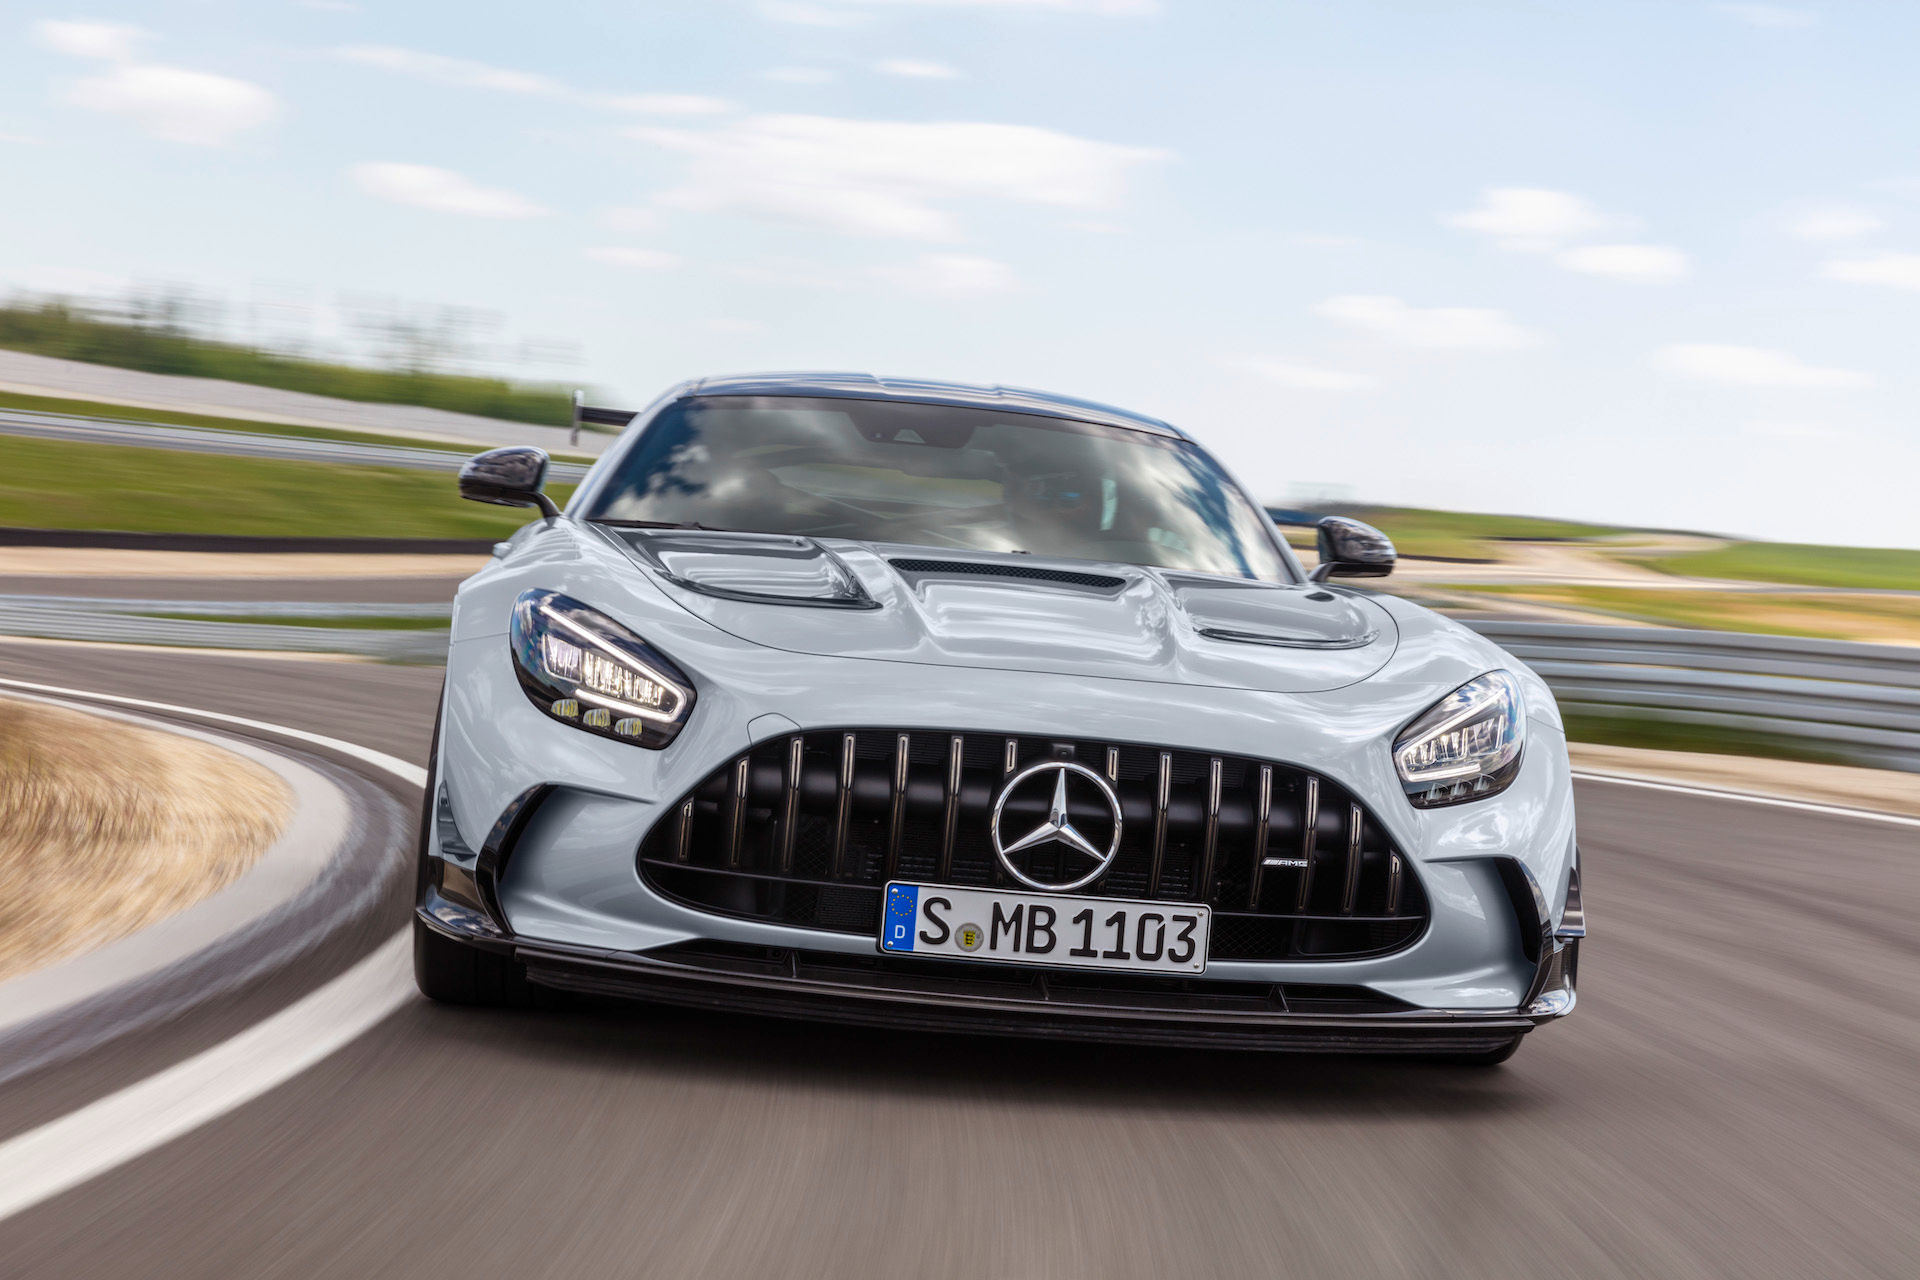 2021 Mercedes-Benz AMG GT Coupe front view